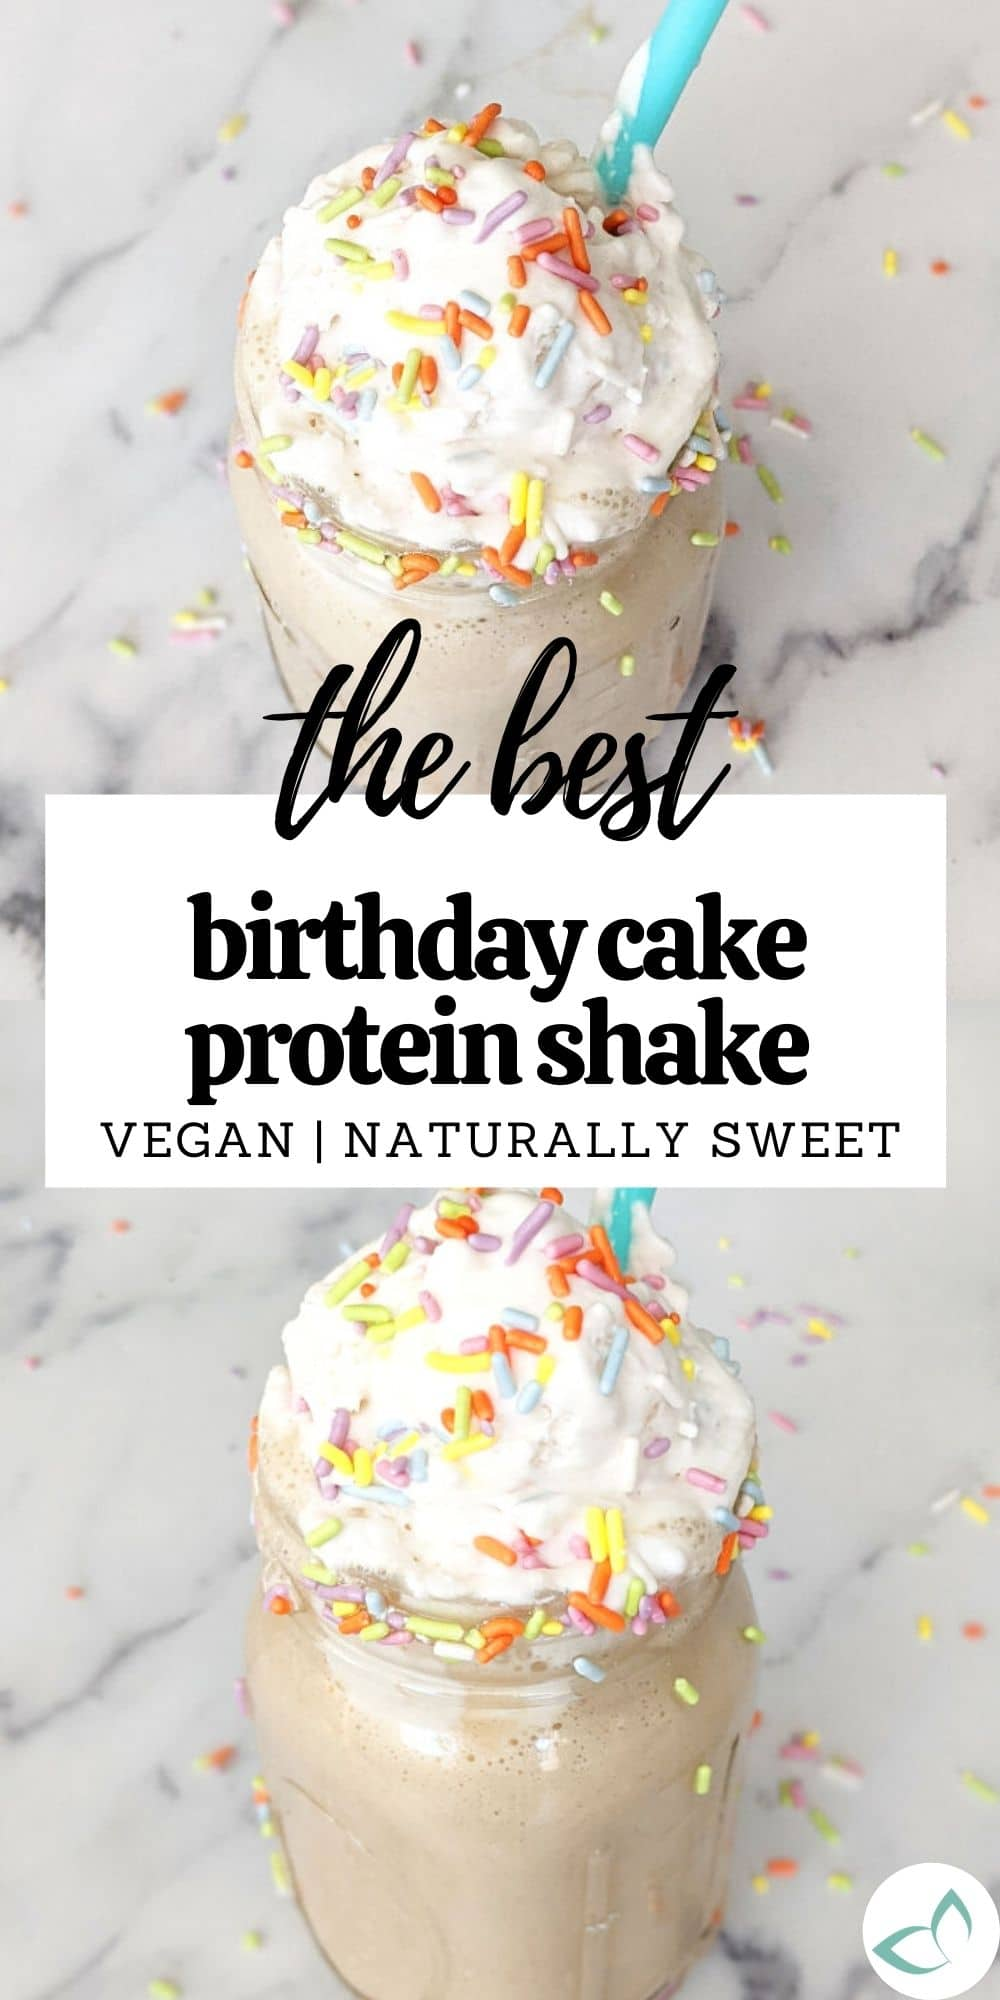 Want a delicious birthday cake smoothie that's also healthy? This shake is your answer! It's completely plant-based, boasts 14 grams of protein, is vegan and has no added sugar (except for sprinkles). Tastes like a delicious birthday cake in a cup!